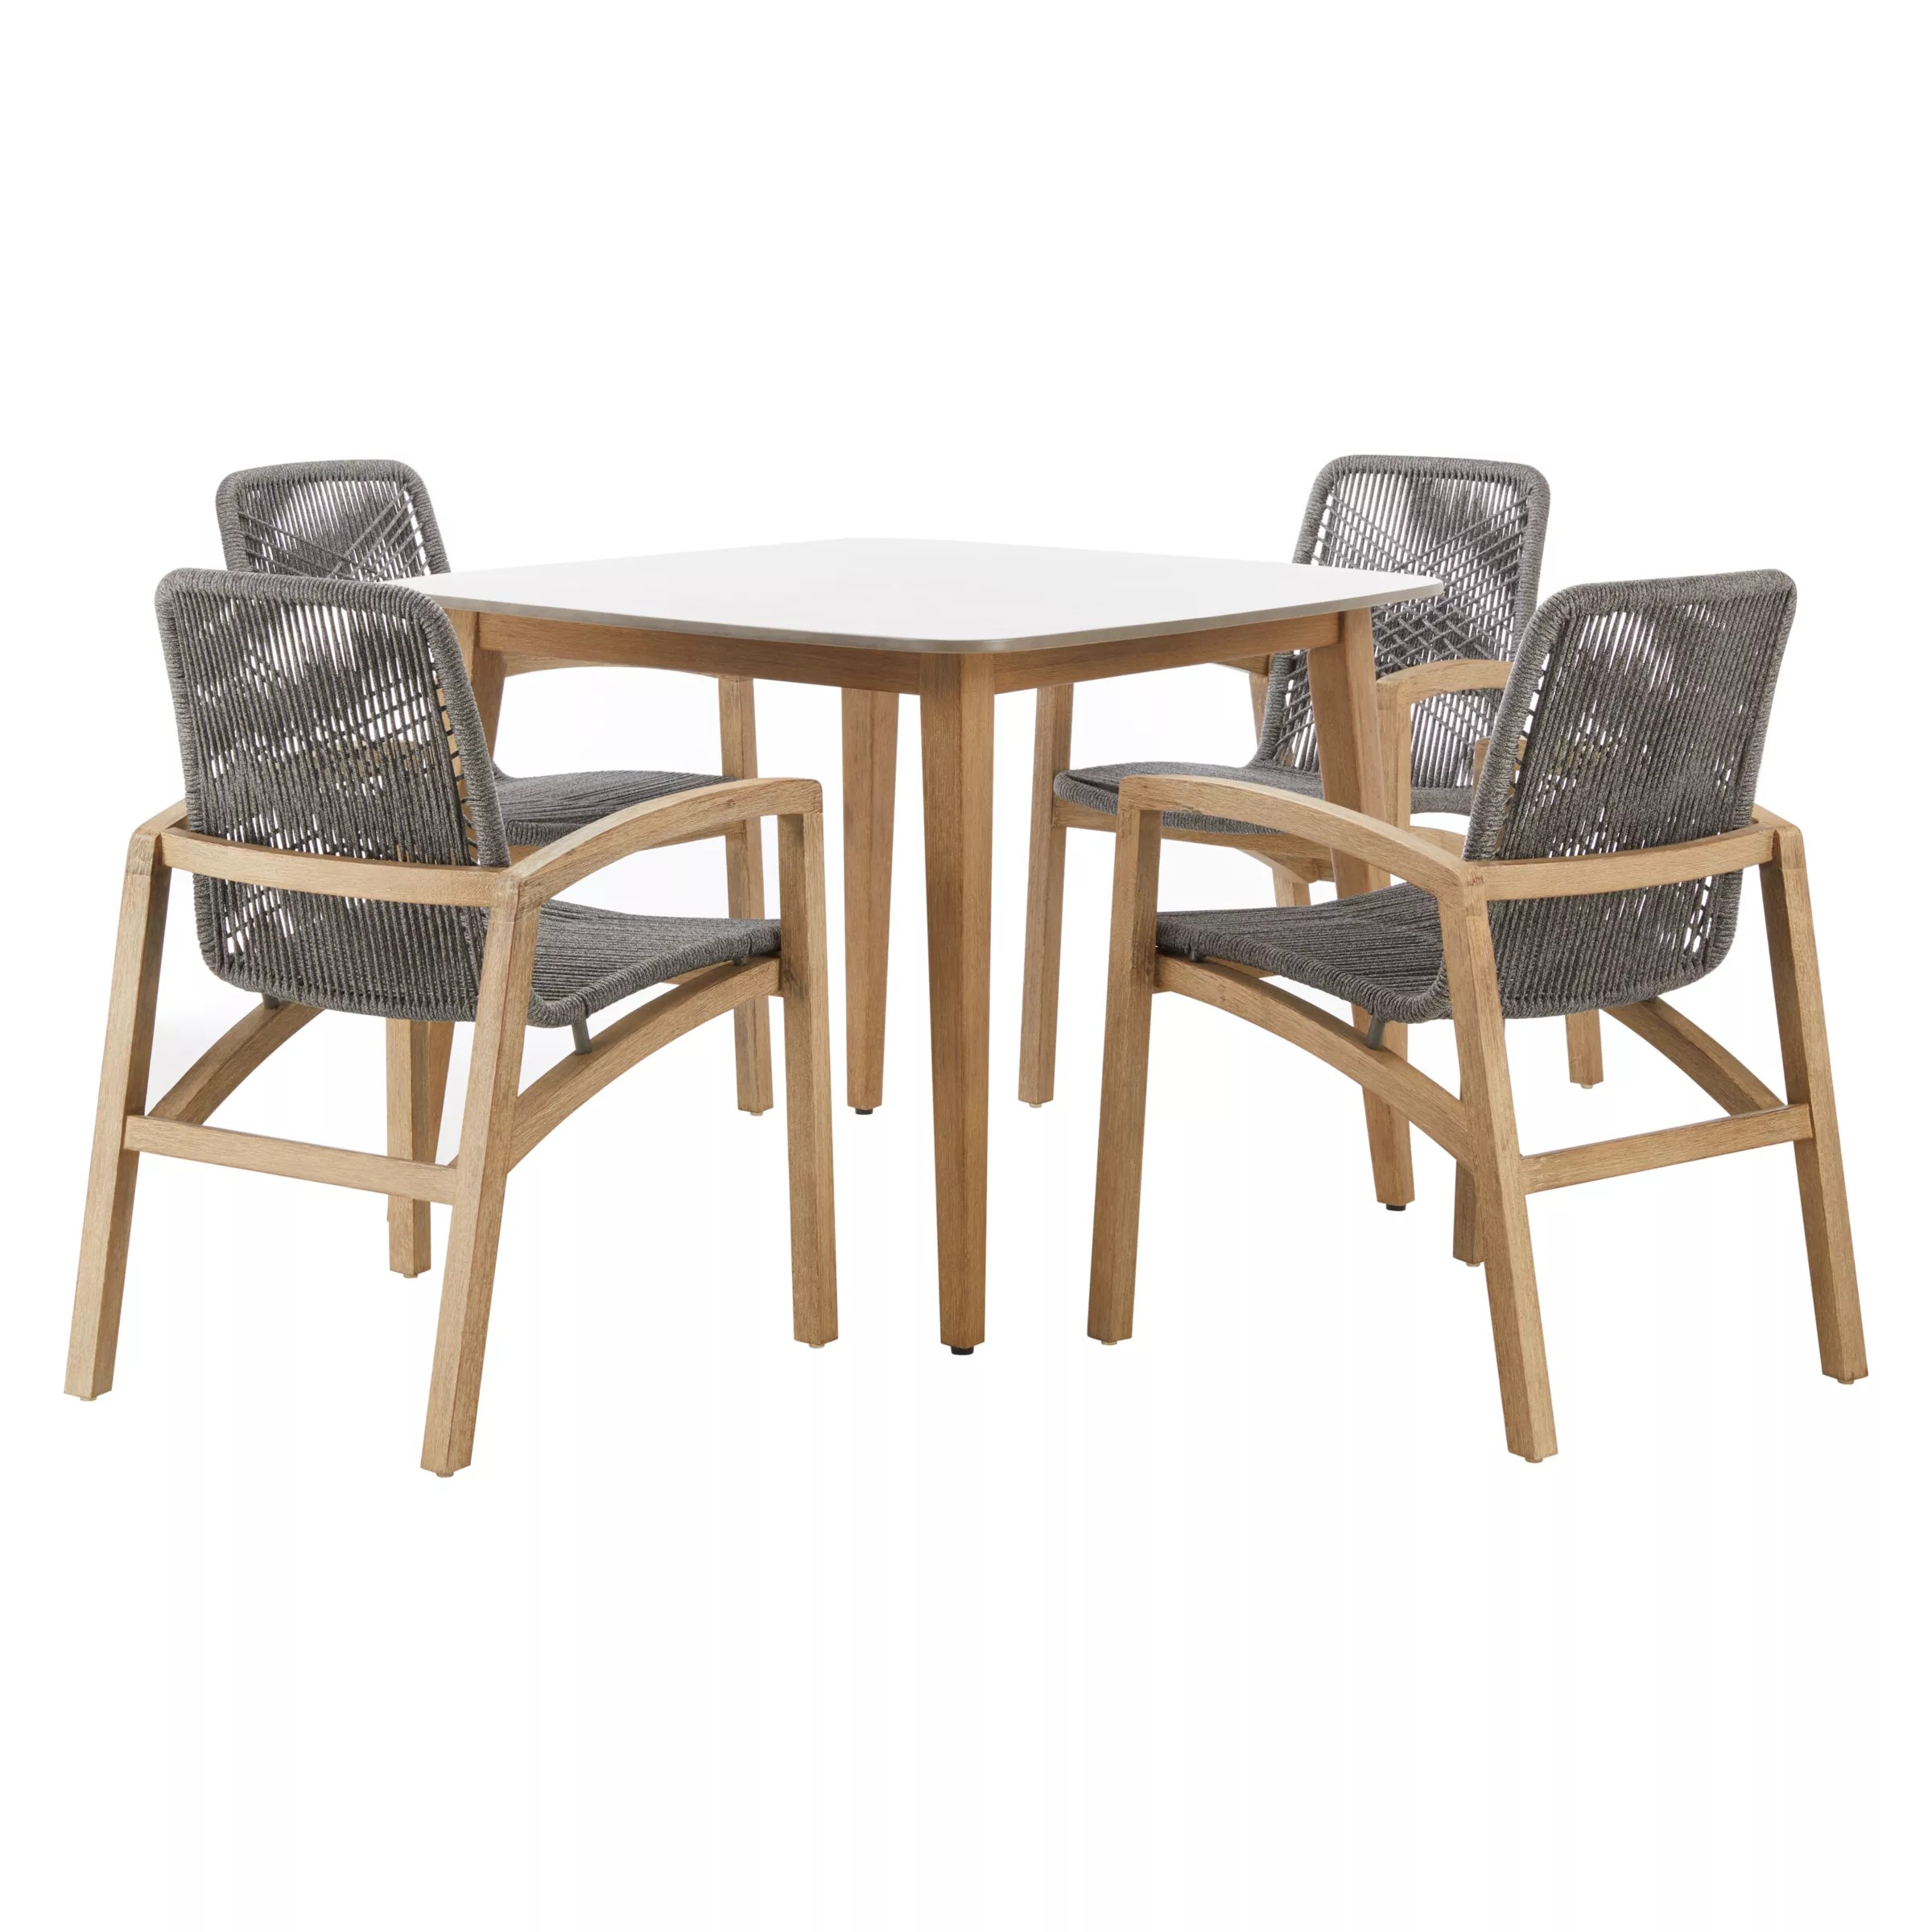 4 seater table and chairs walmart wicker john lewis leia square garden